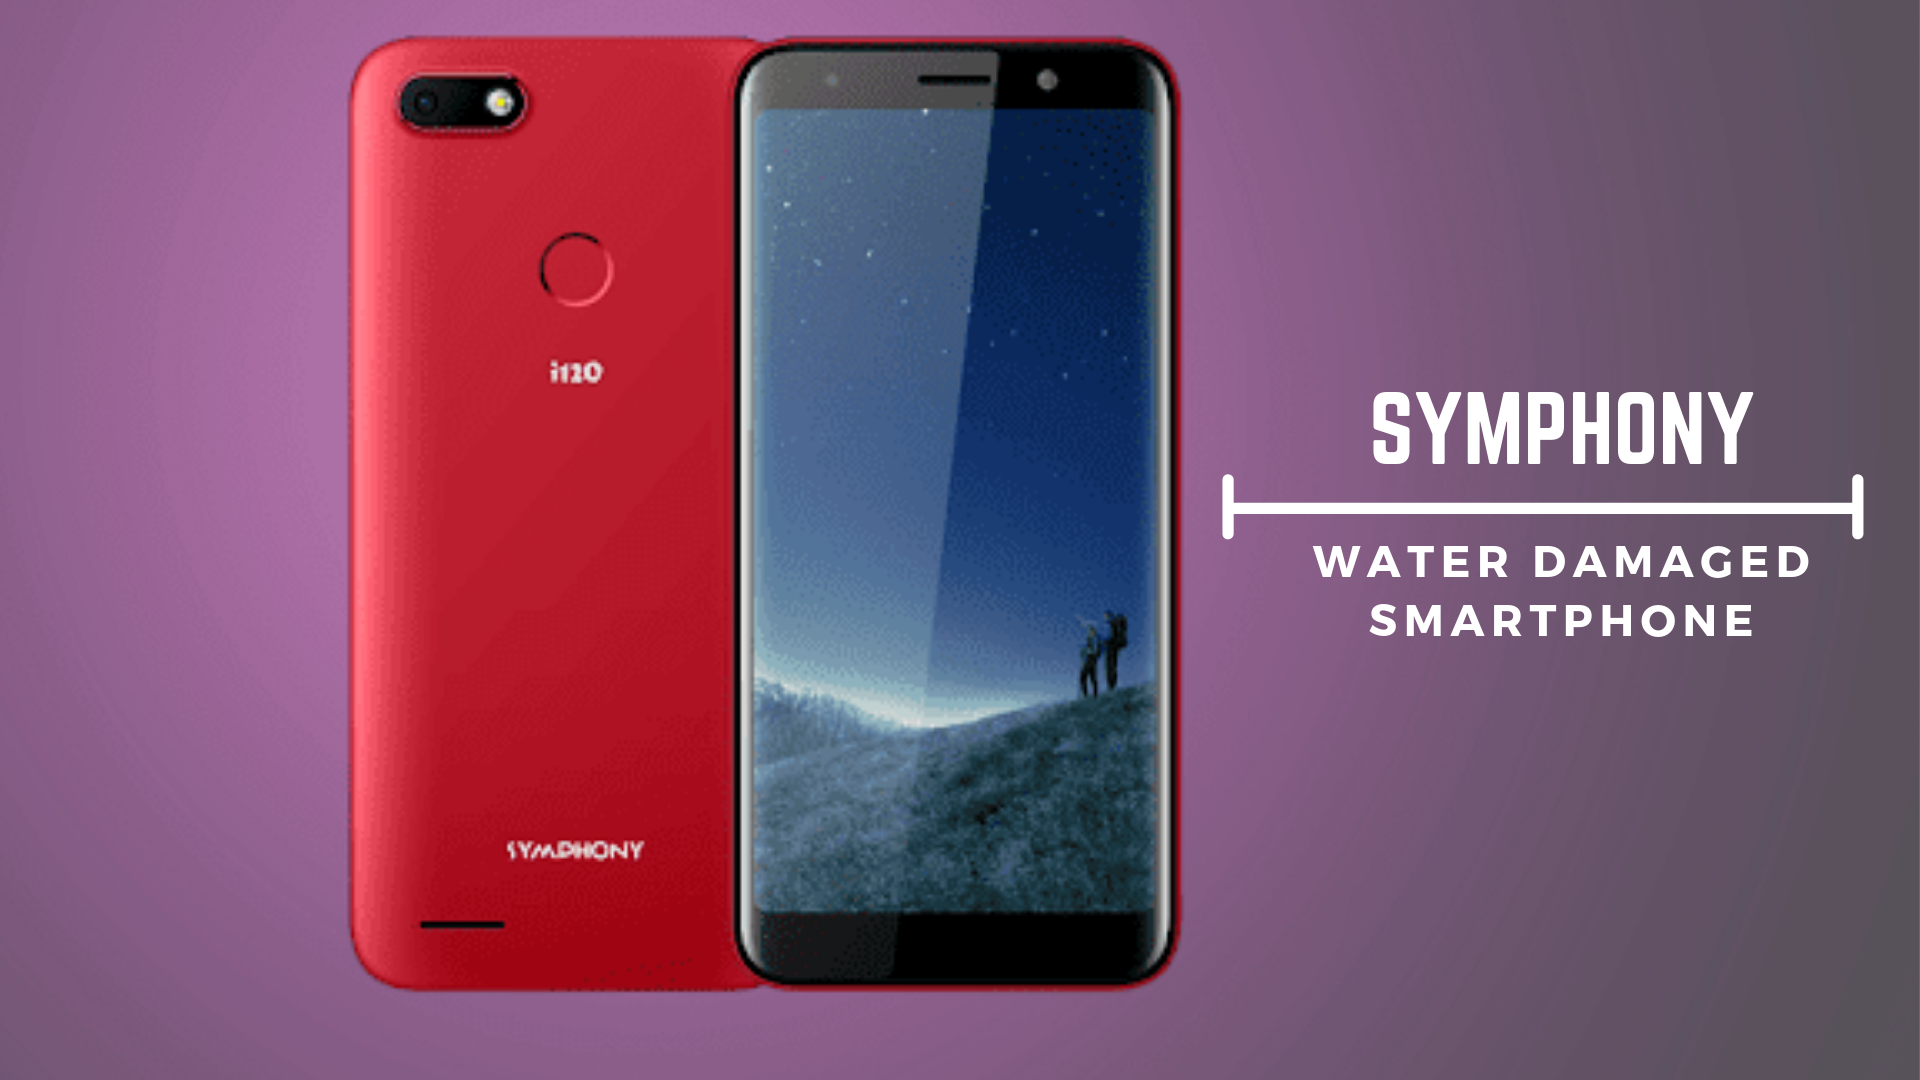 How To Fix Symphony Water Damaged Smartphone [Quick Guide]